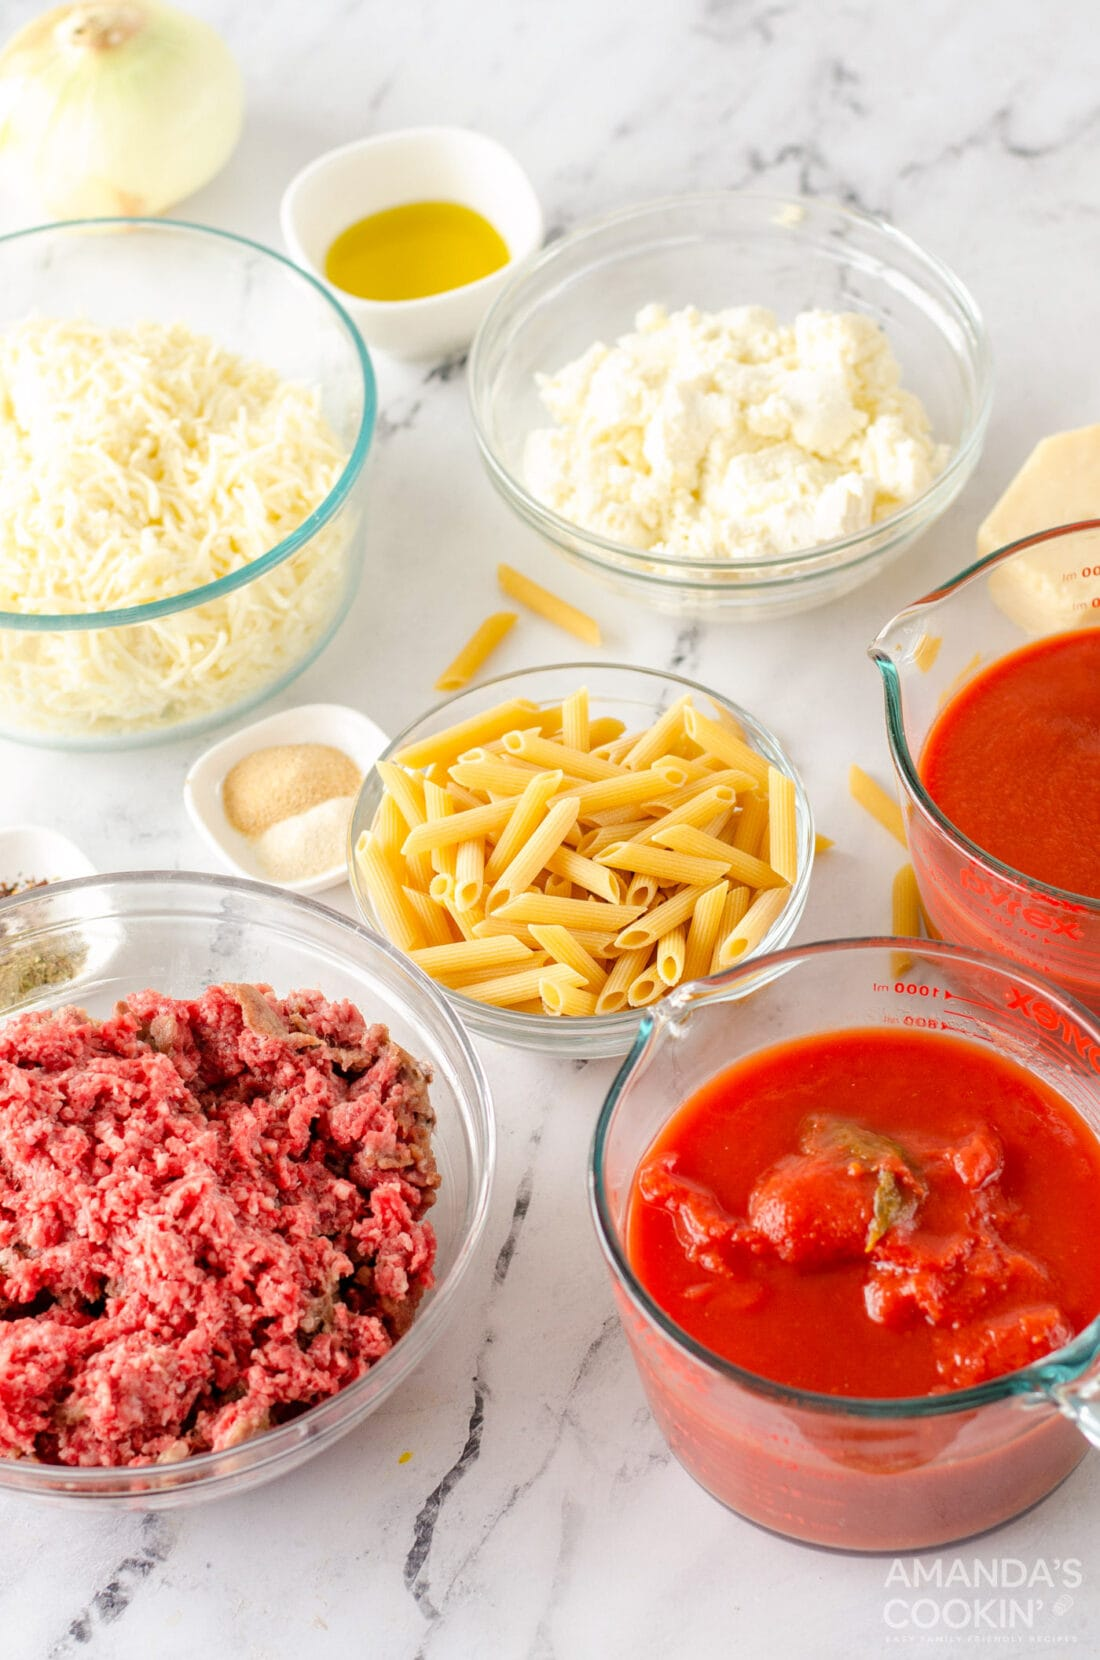 ingredients for baked ziti